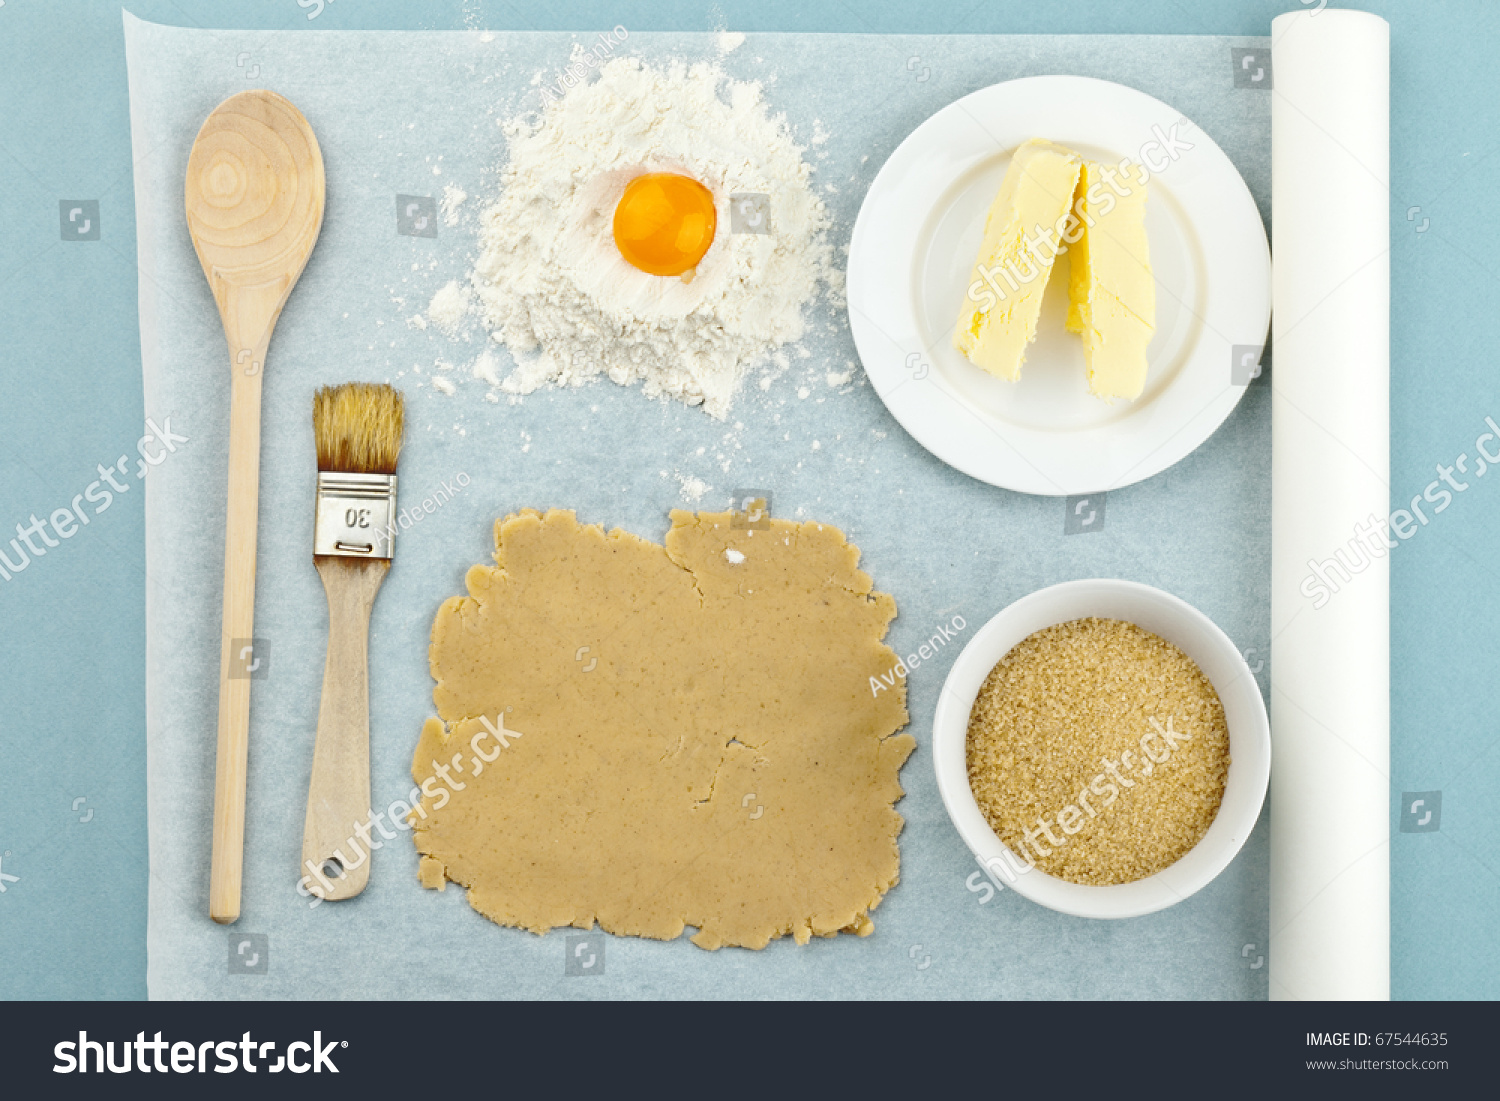 Baking ingredients for shortcrust pastry stock photo for Shortcrust pastry ingredients